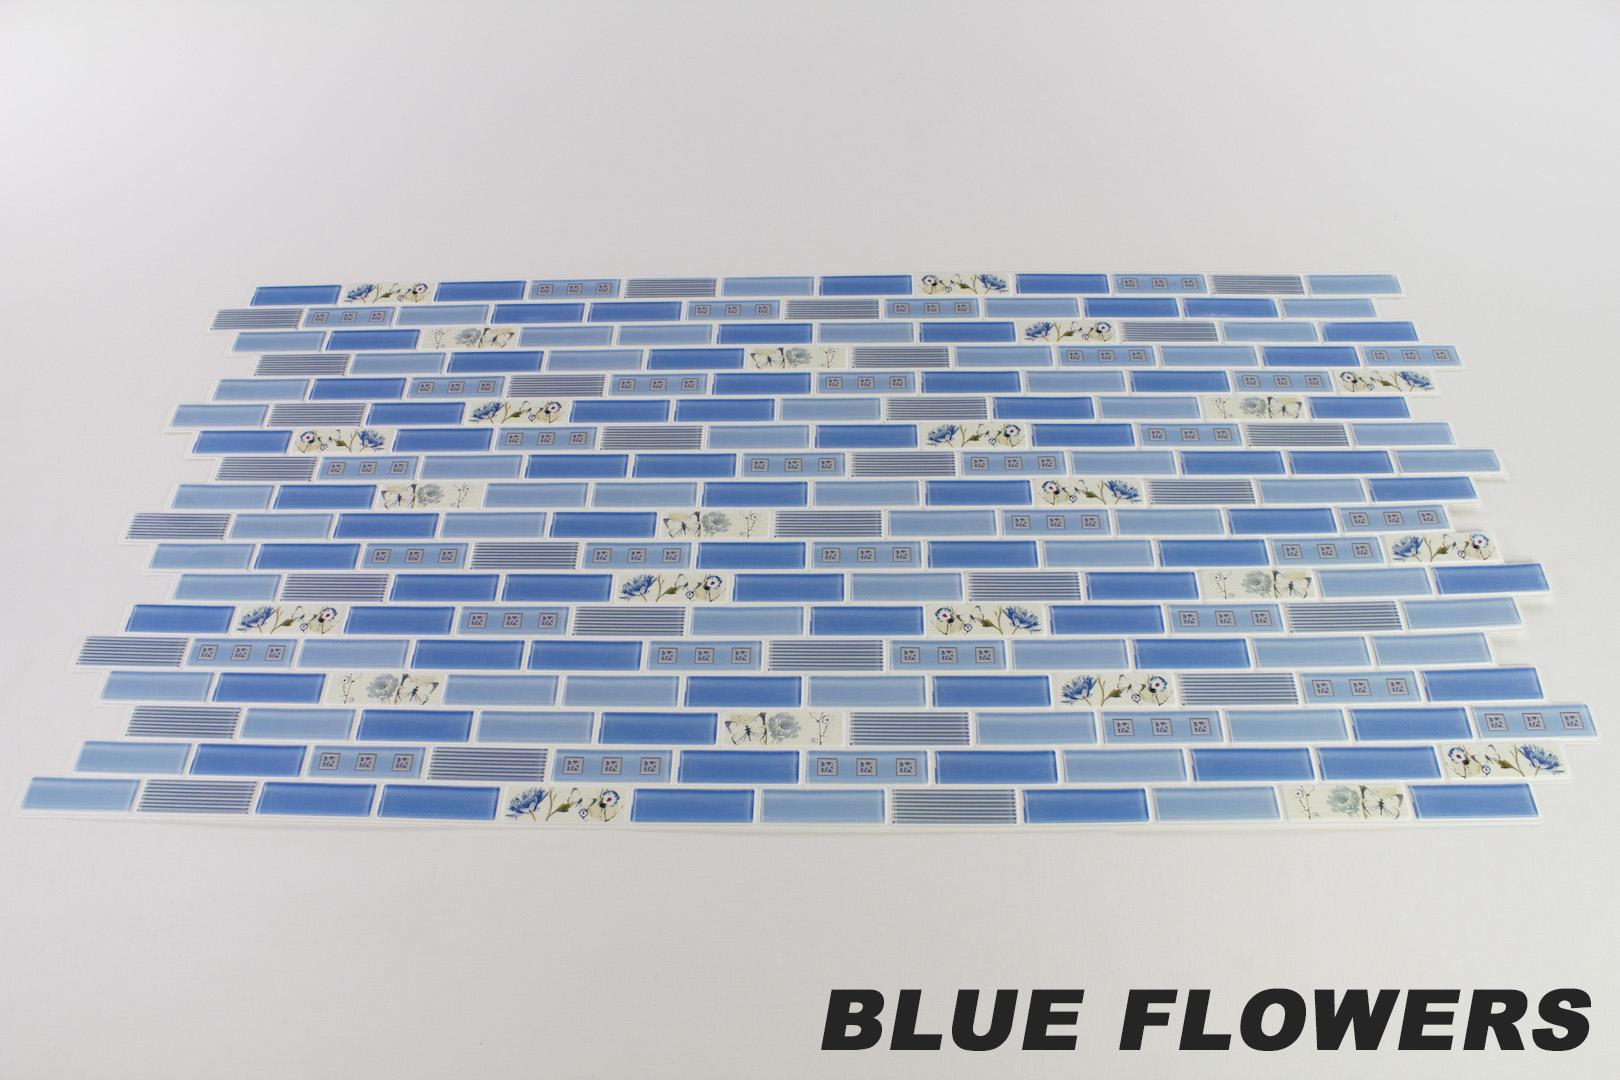 1 pvc dekorplatte mosaic wandverkleidung platten wand 95x48cm blue flowers ebay. Black Bedroom Furniture Sets. Home Design Ideas